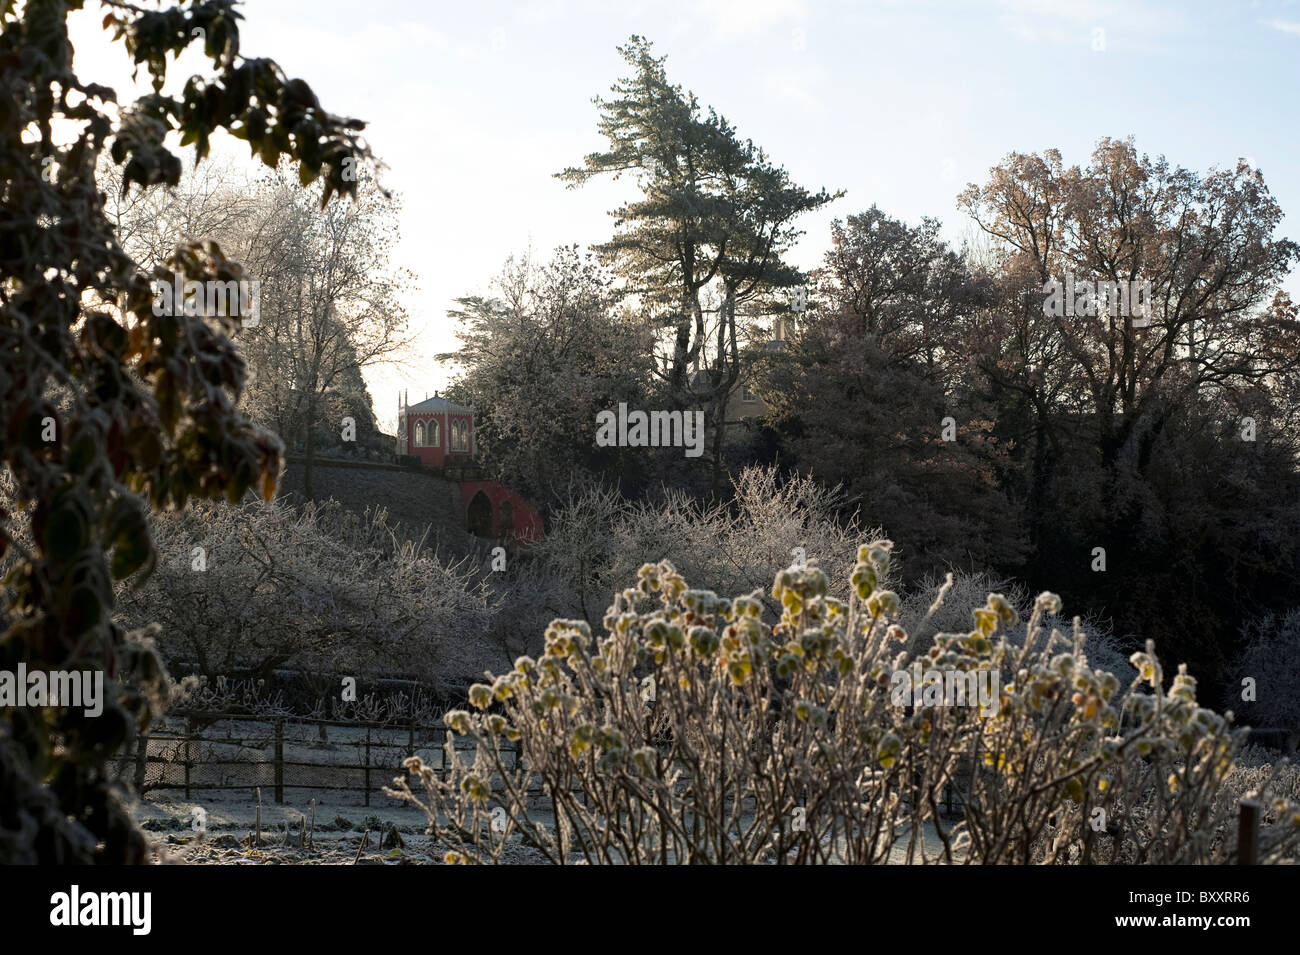 Painswick Rococo Garden in the winter after a heavy frost, Gloucestershire, England, United Kingdom - Stock Image